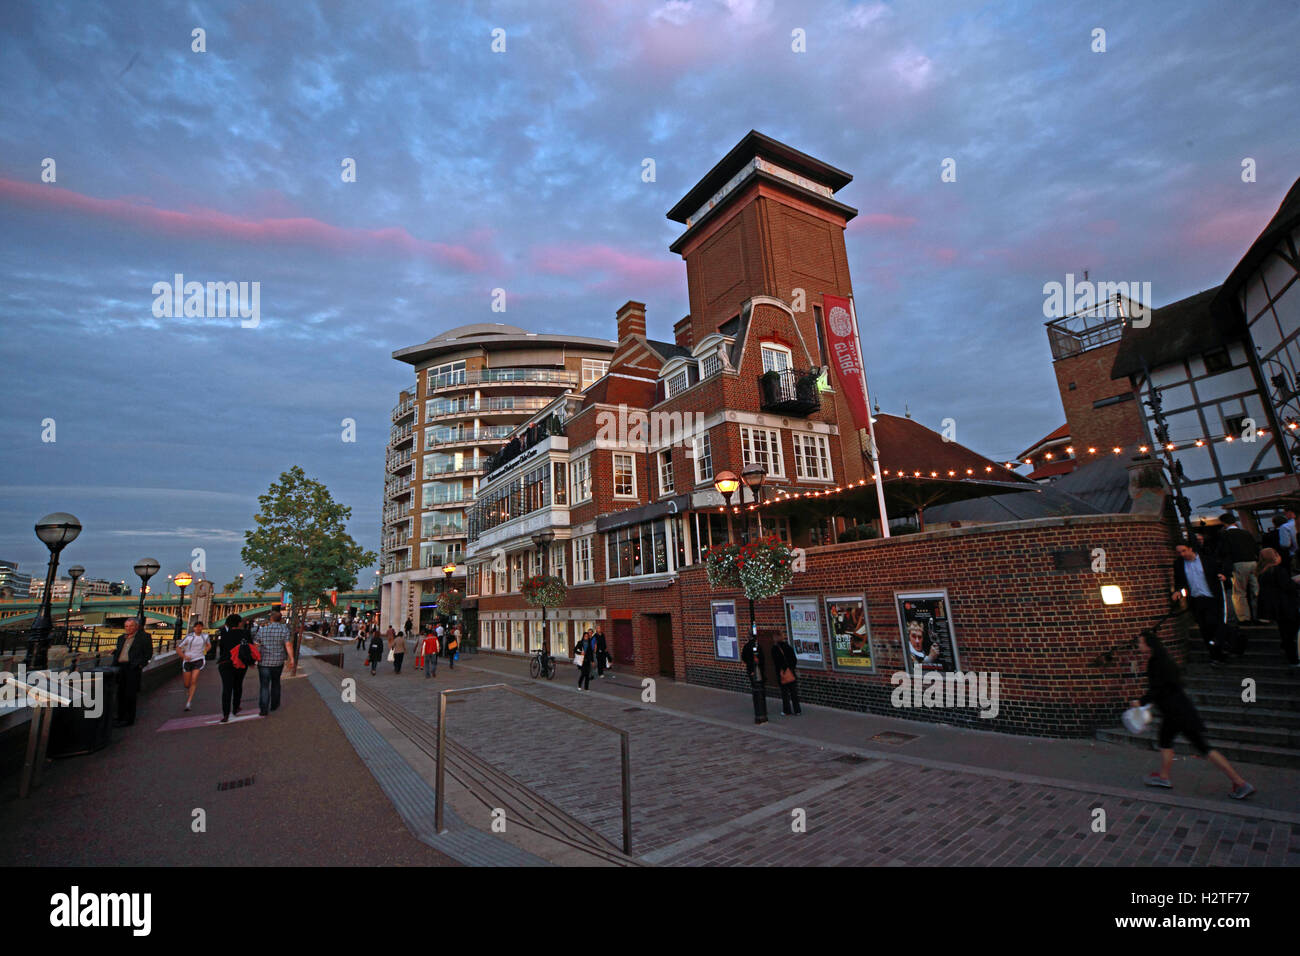 Shakespeares Globe Theatre, Bankside,Southwark,London at dusk - Stock Image